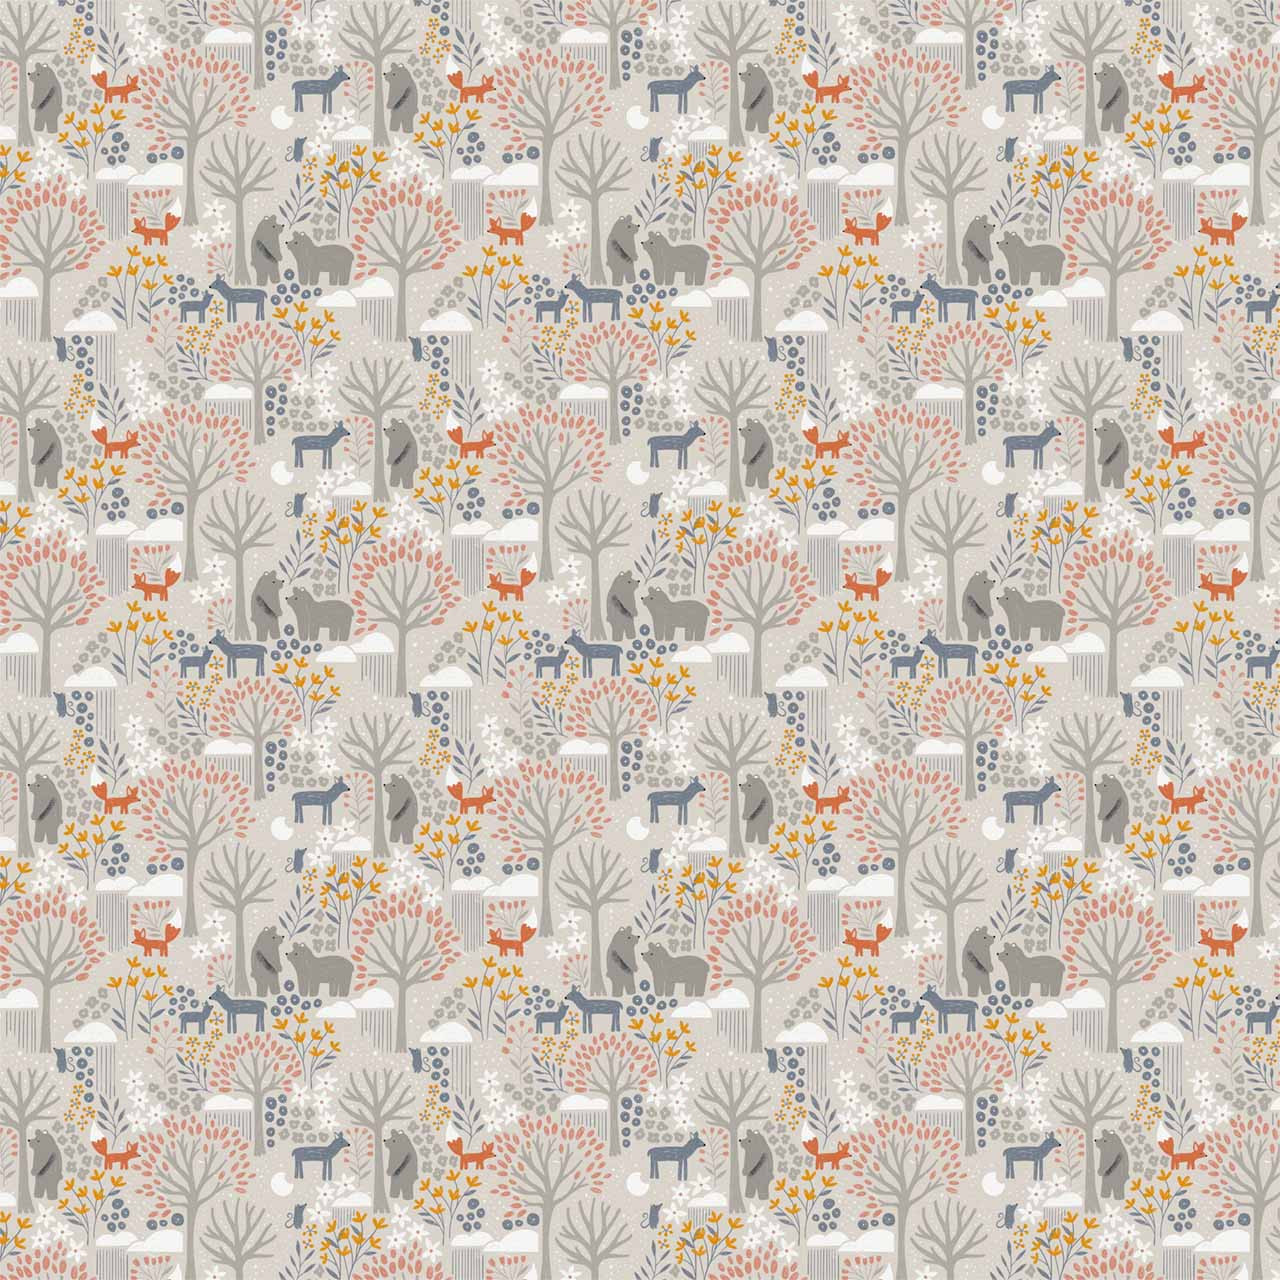 Night Forest Mini Fabric Design (Pink and Gray colorway)